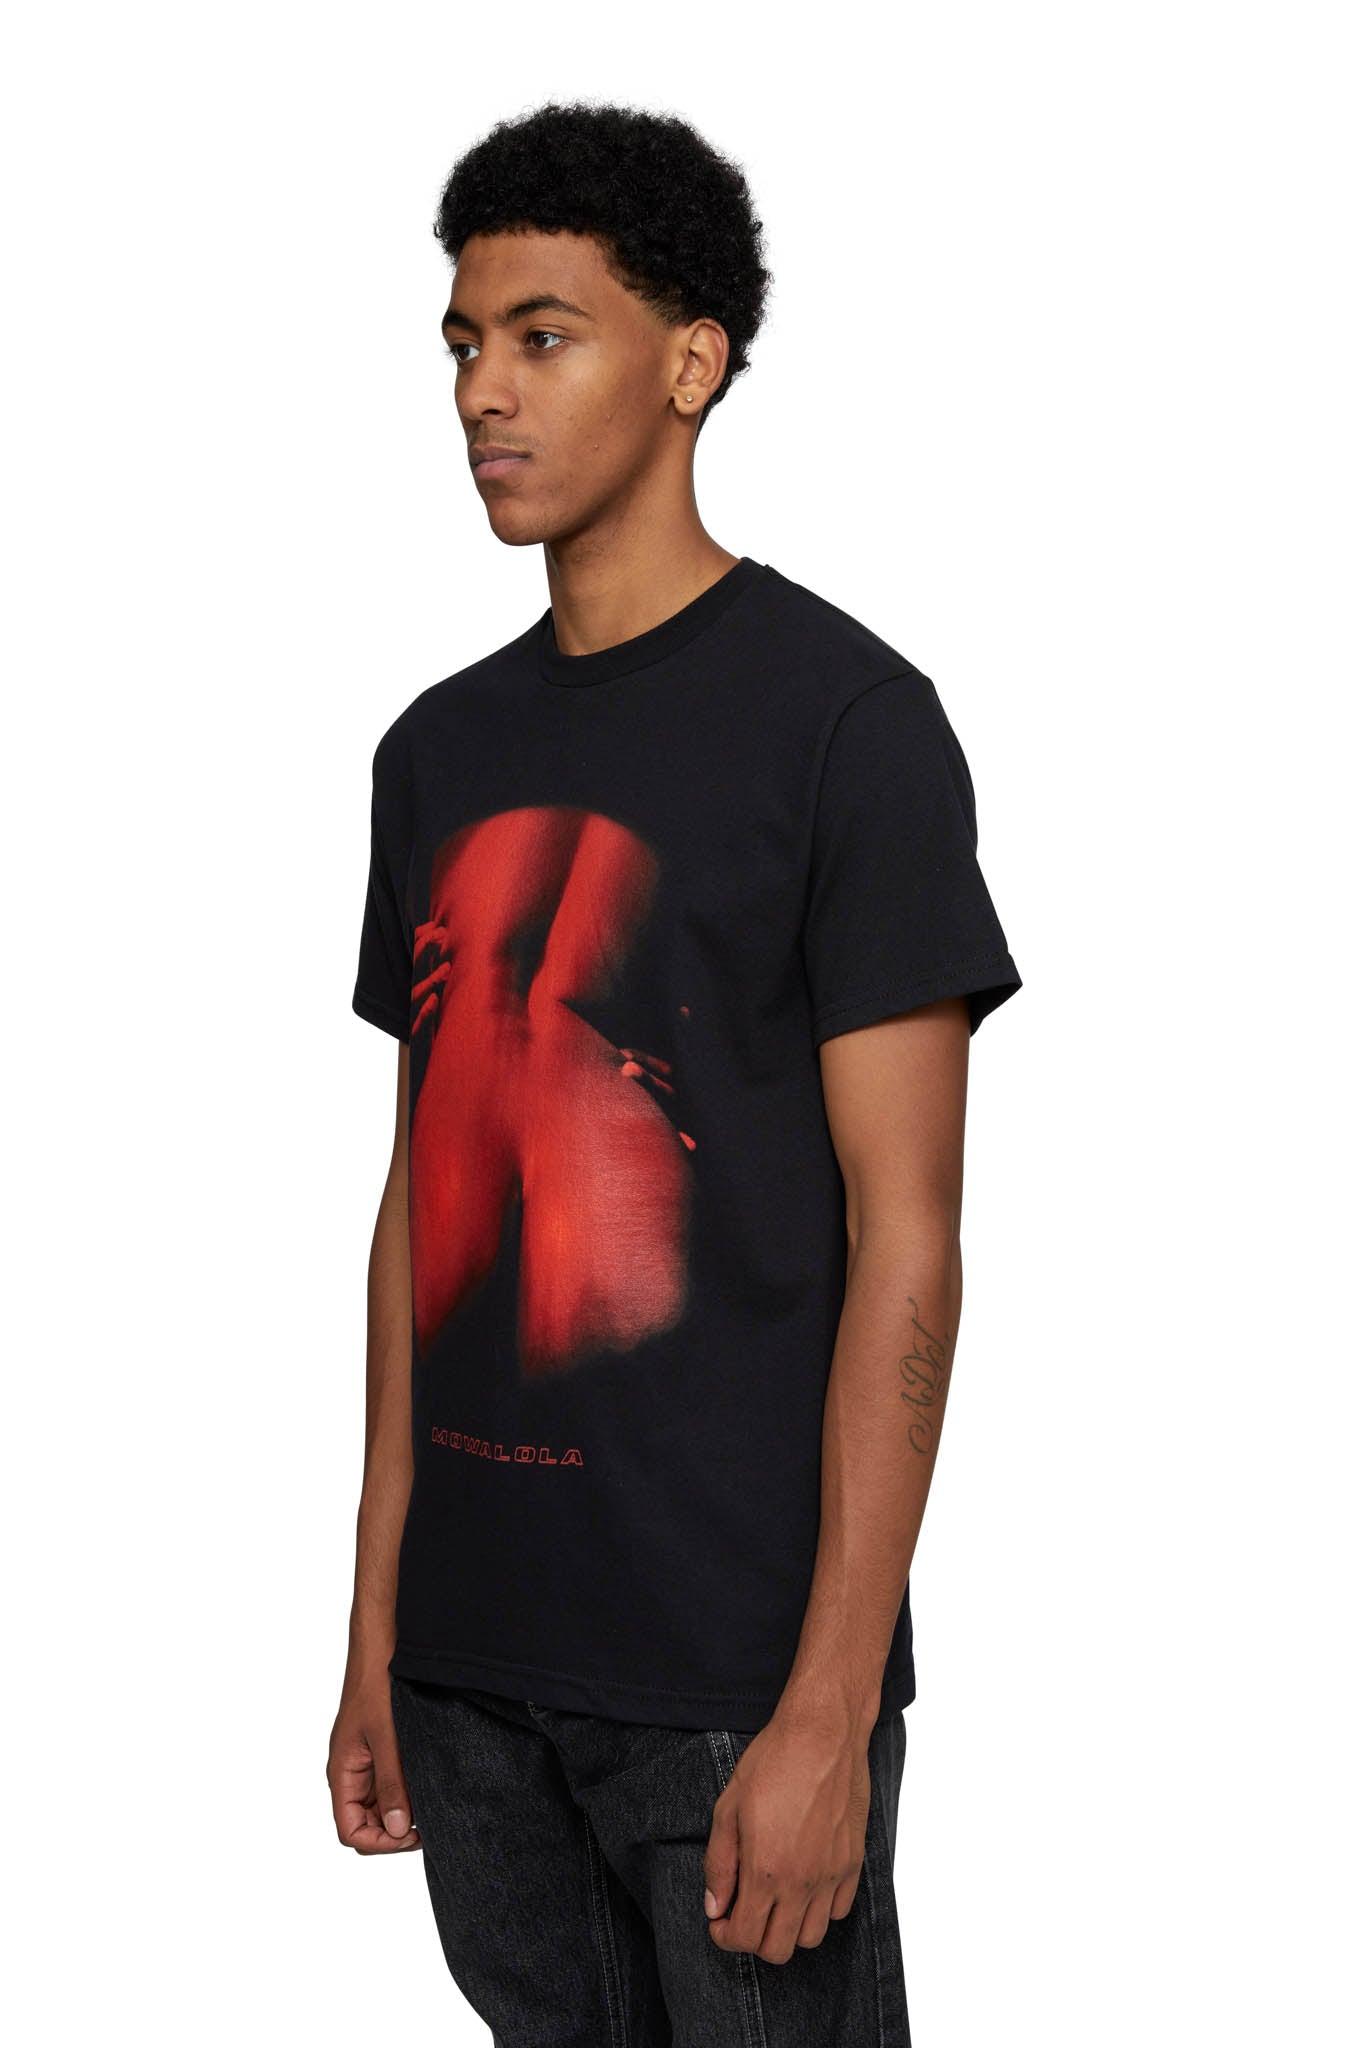 MOWALOLA, HEAT TEE, BLACK / RED, AW20M09, AW20, GRAPHIC, MENS, PRINT, T-SHIRT